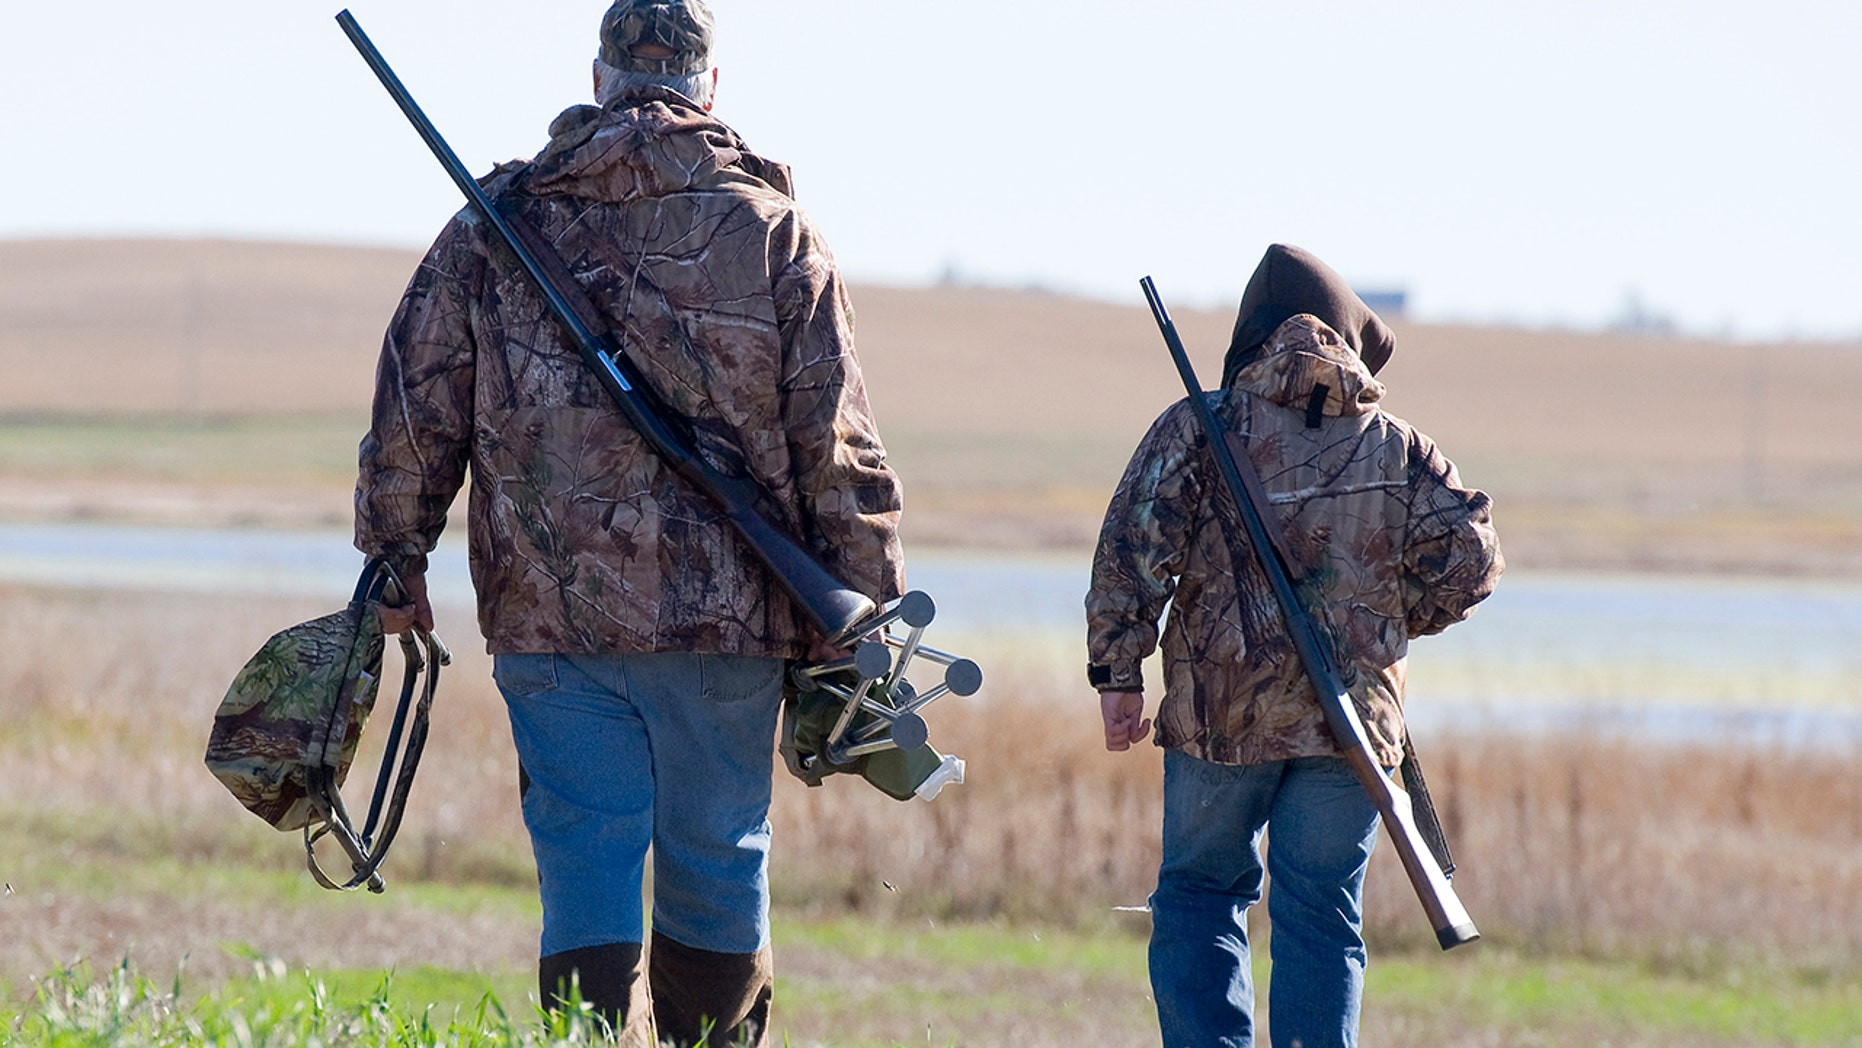 Many Democratic lawmakers in Raleigh, however, argue that there is currently no push in North Carolina to restrict any type of hunting and fishing and that the ballot measure is simply about Republicans playing politics ahead of the contentious midterm elections.